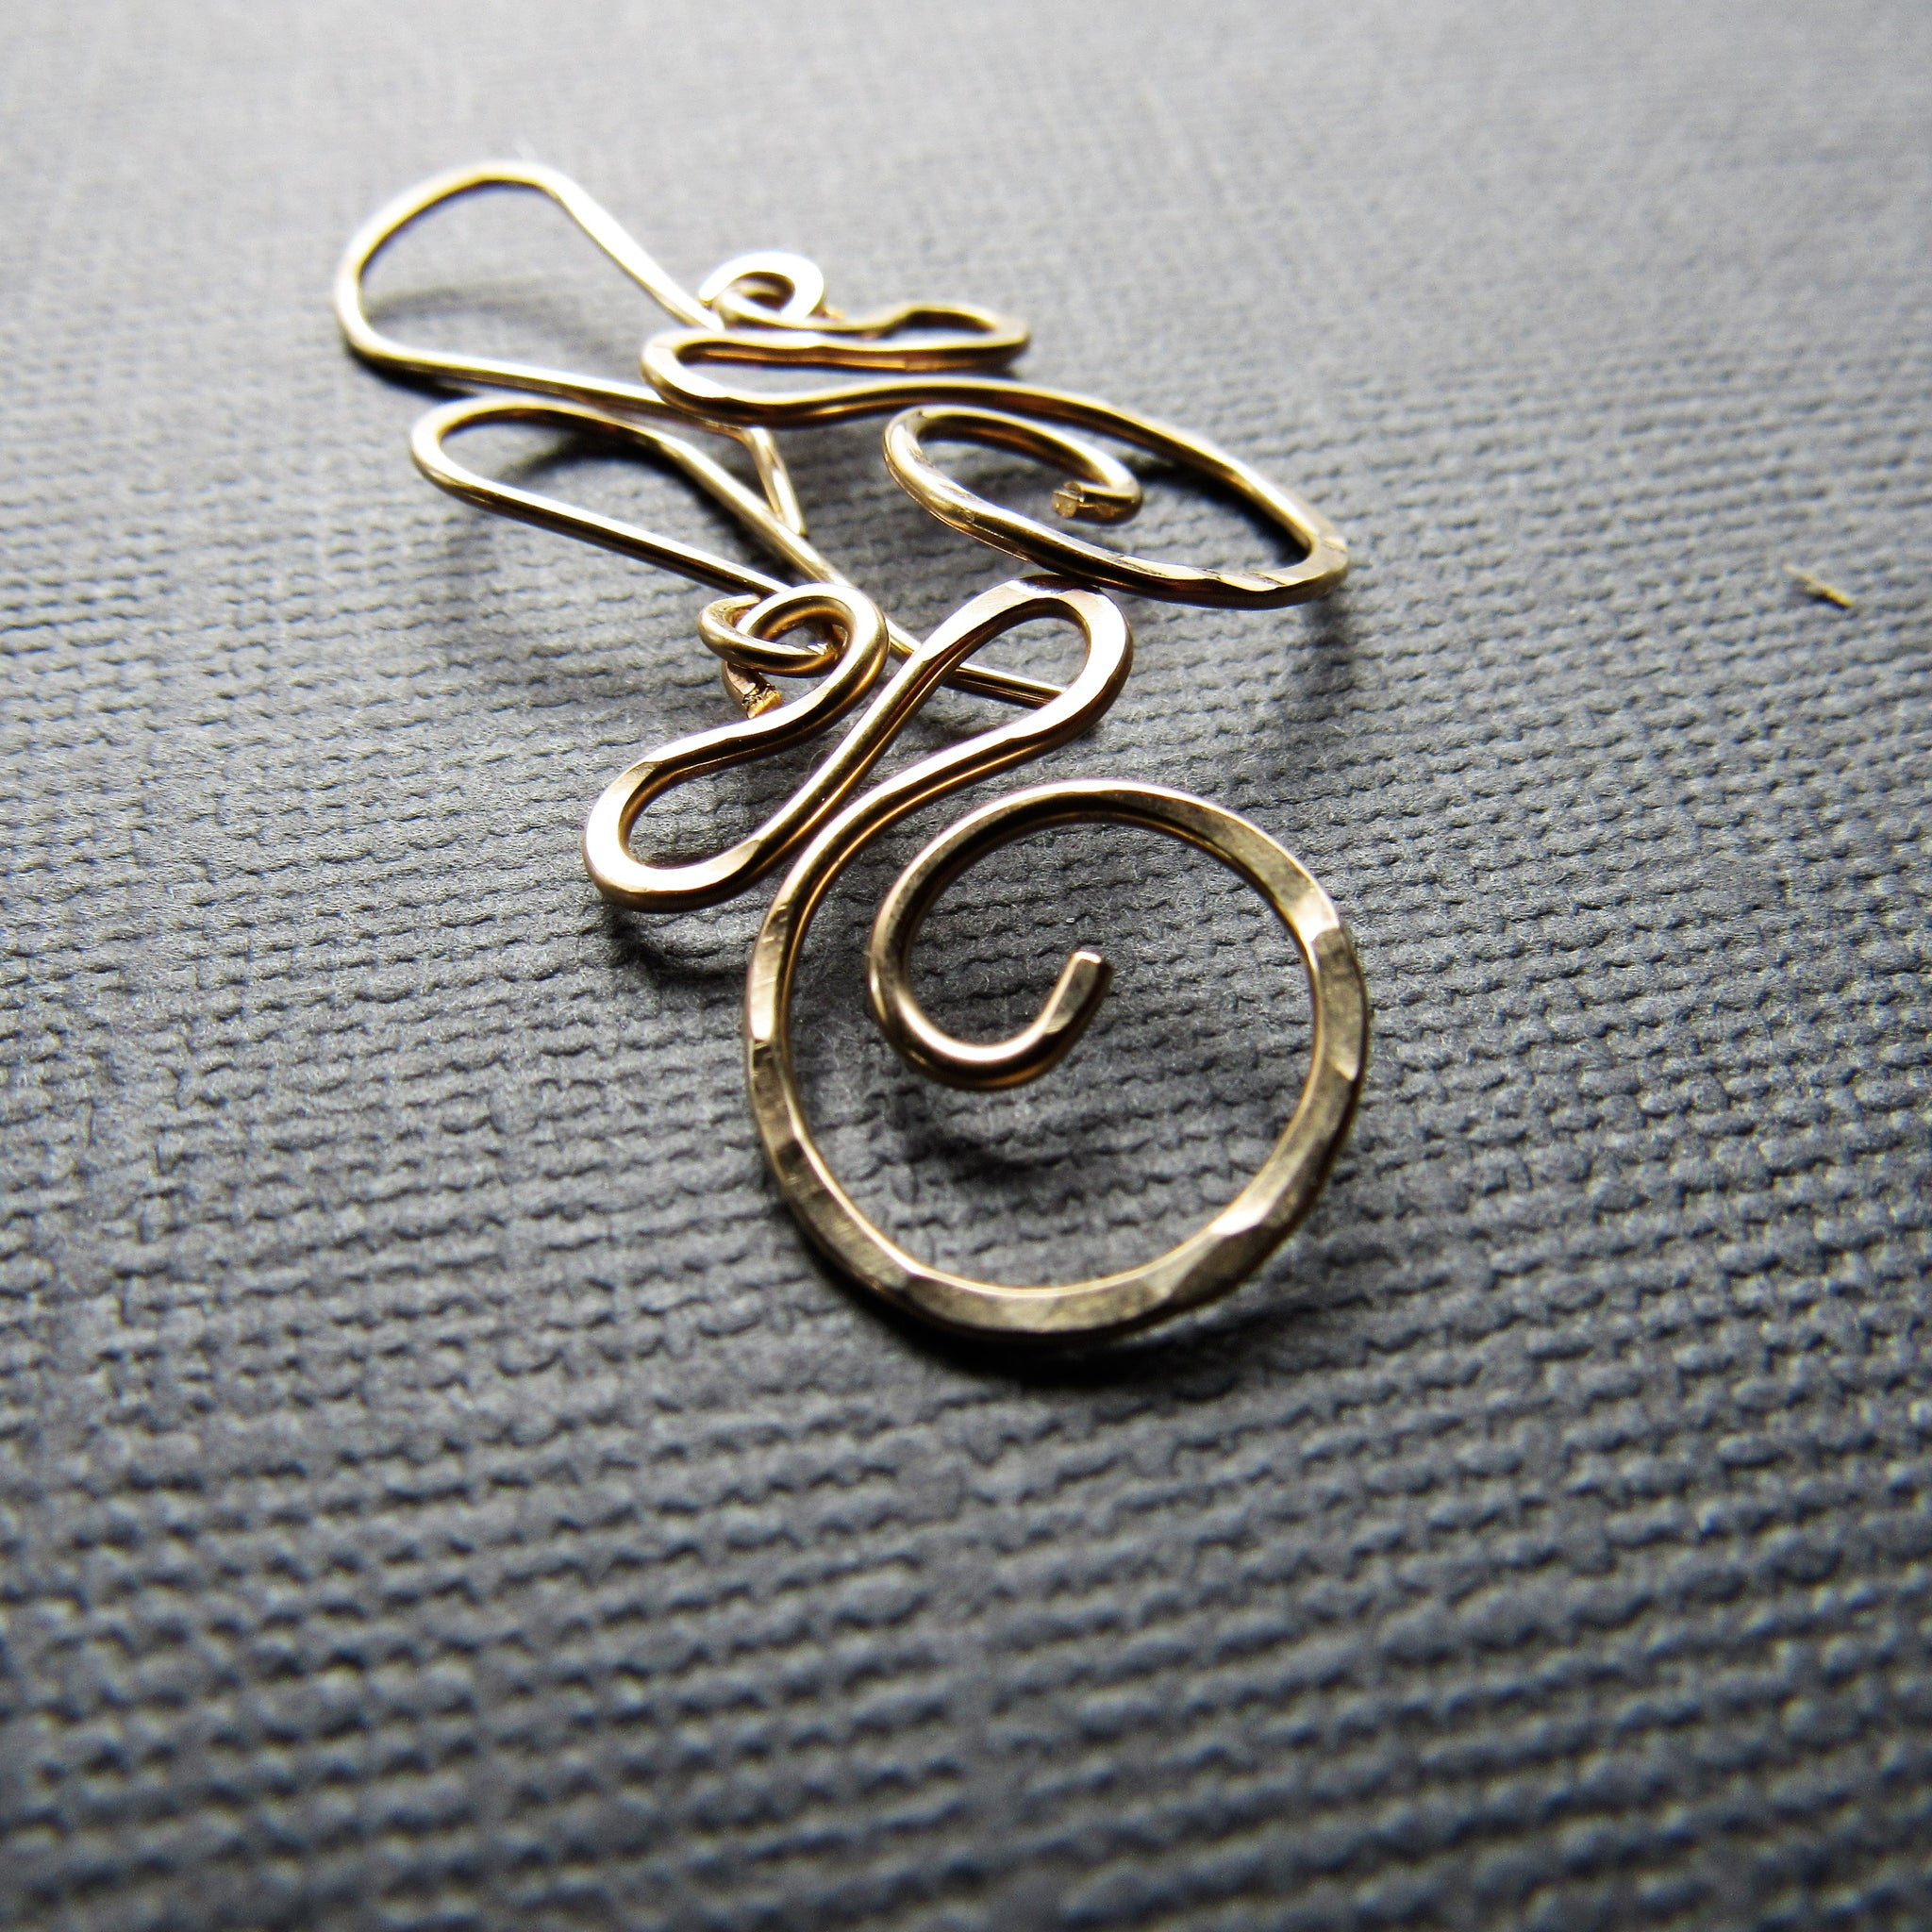 Gold Swirl Earrings